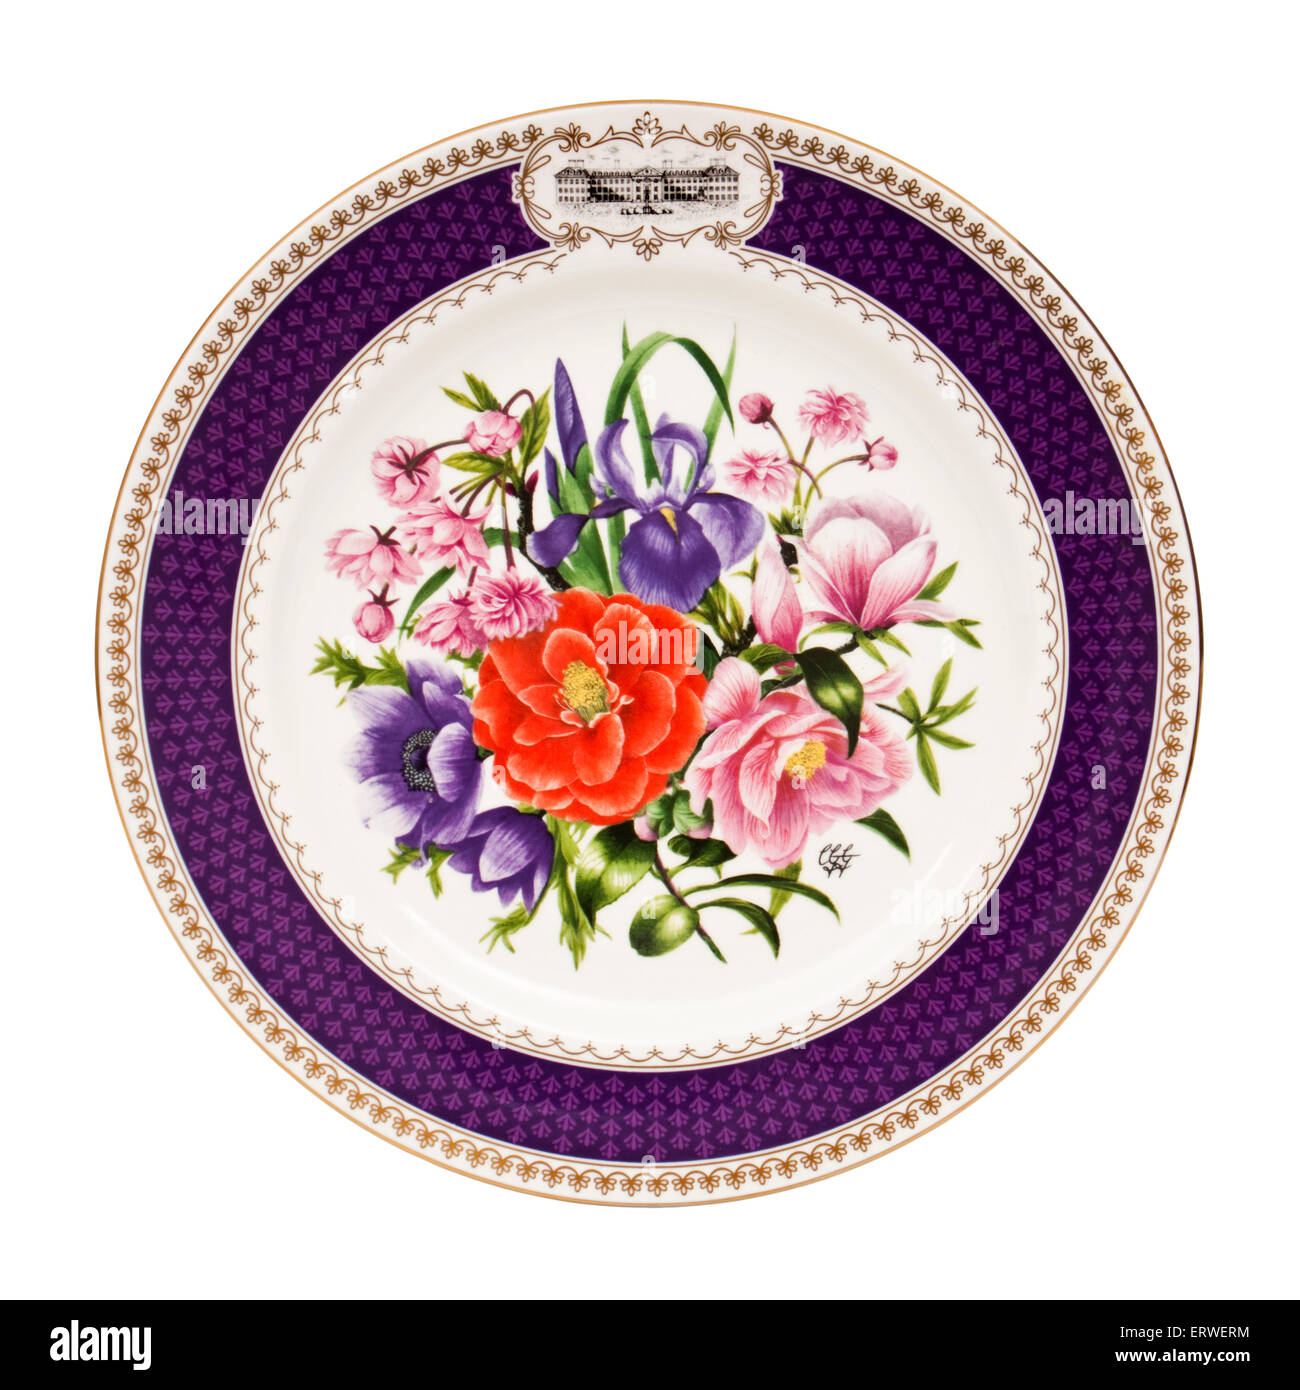 'Chelsea Glory', the 1986 Chelsea Flower Show plate by Aynsley Pottery, commissioned by The Royal Horticultural - Stock Image